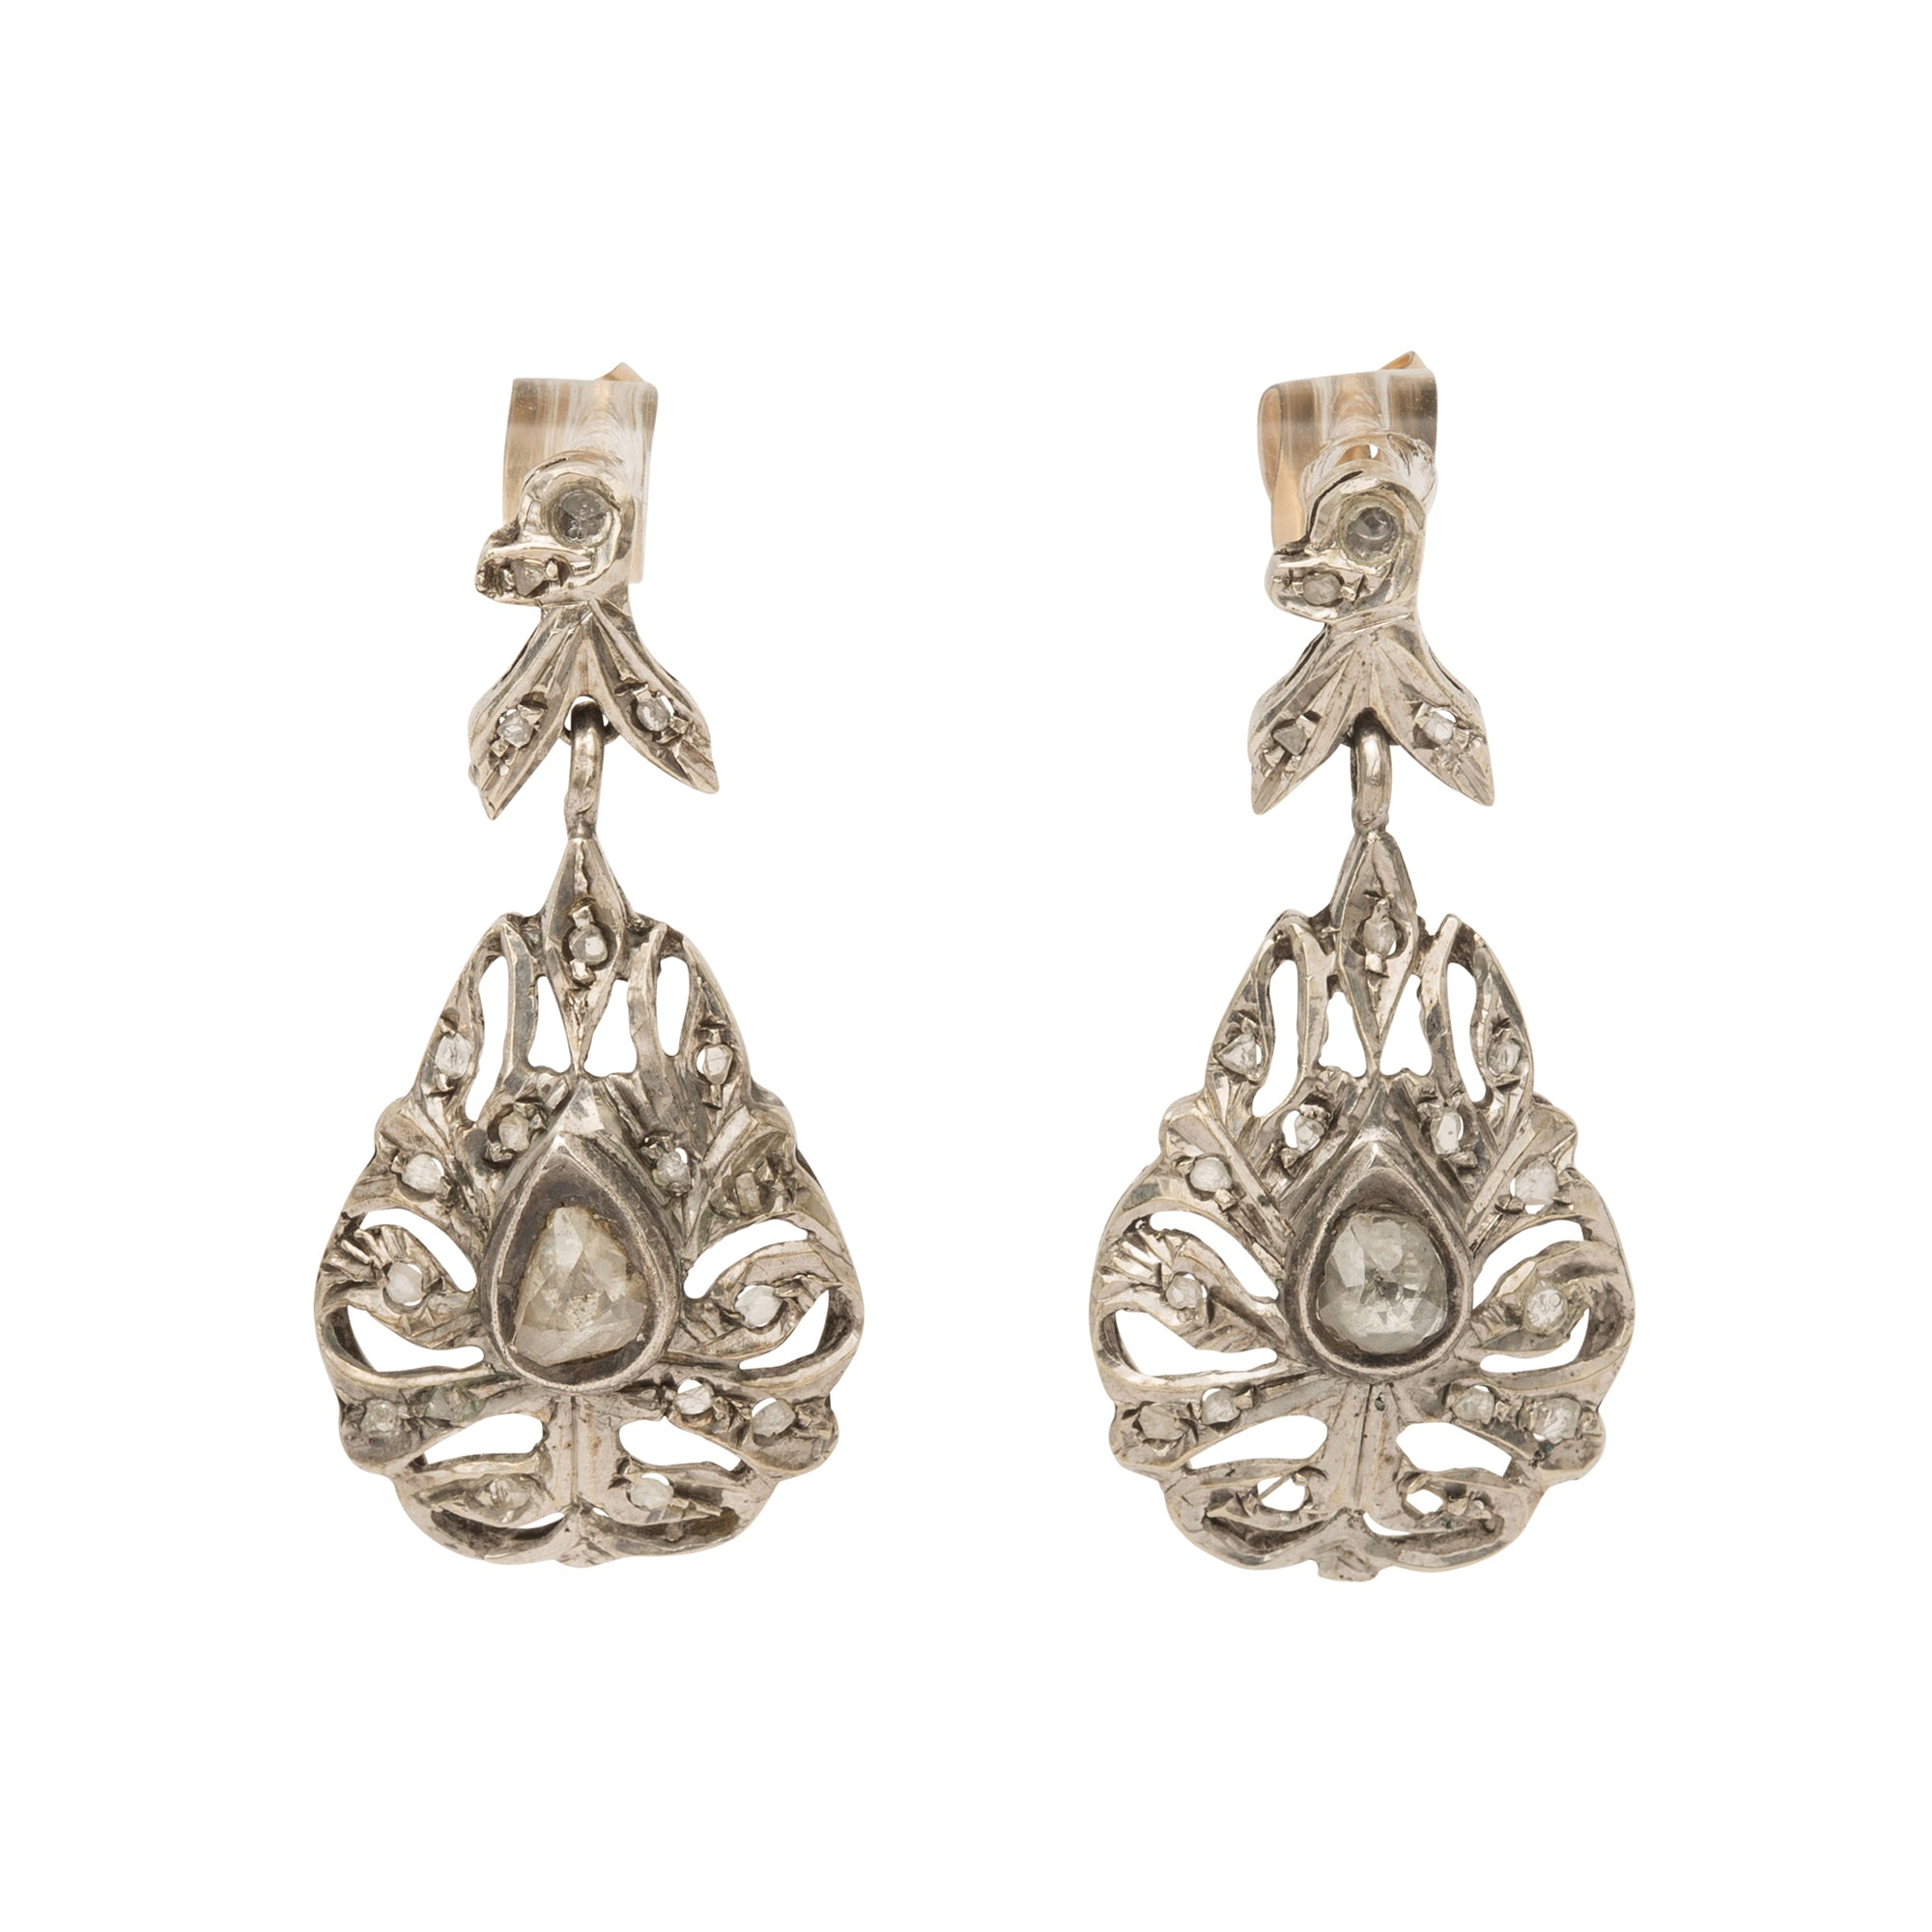 Silver Rose Cut Diamond Earrings from Broken English Jewelry